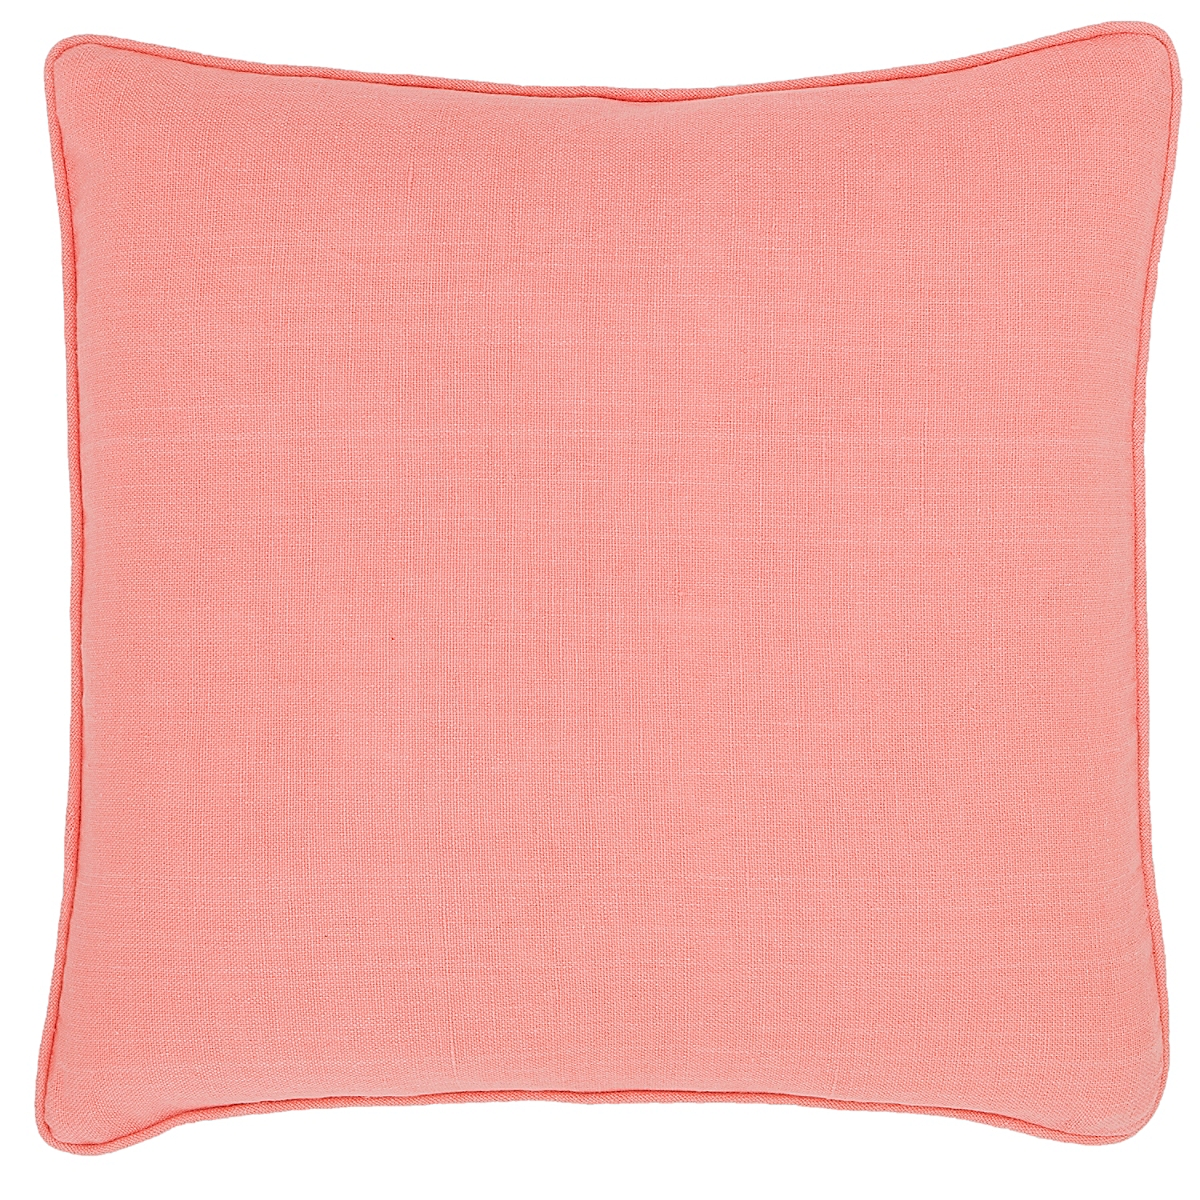 Stone Washed Linen Coral Decorative Pillow